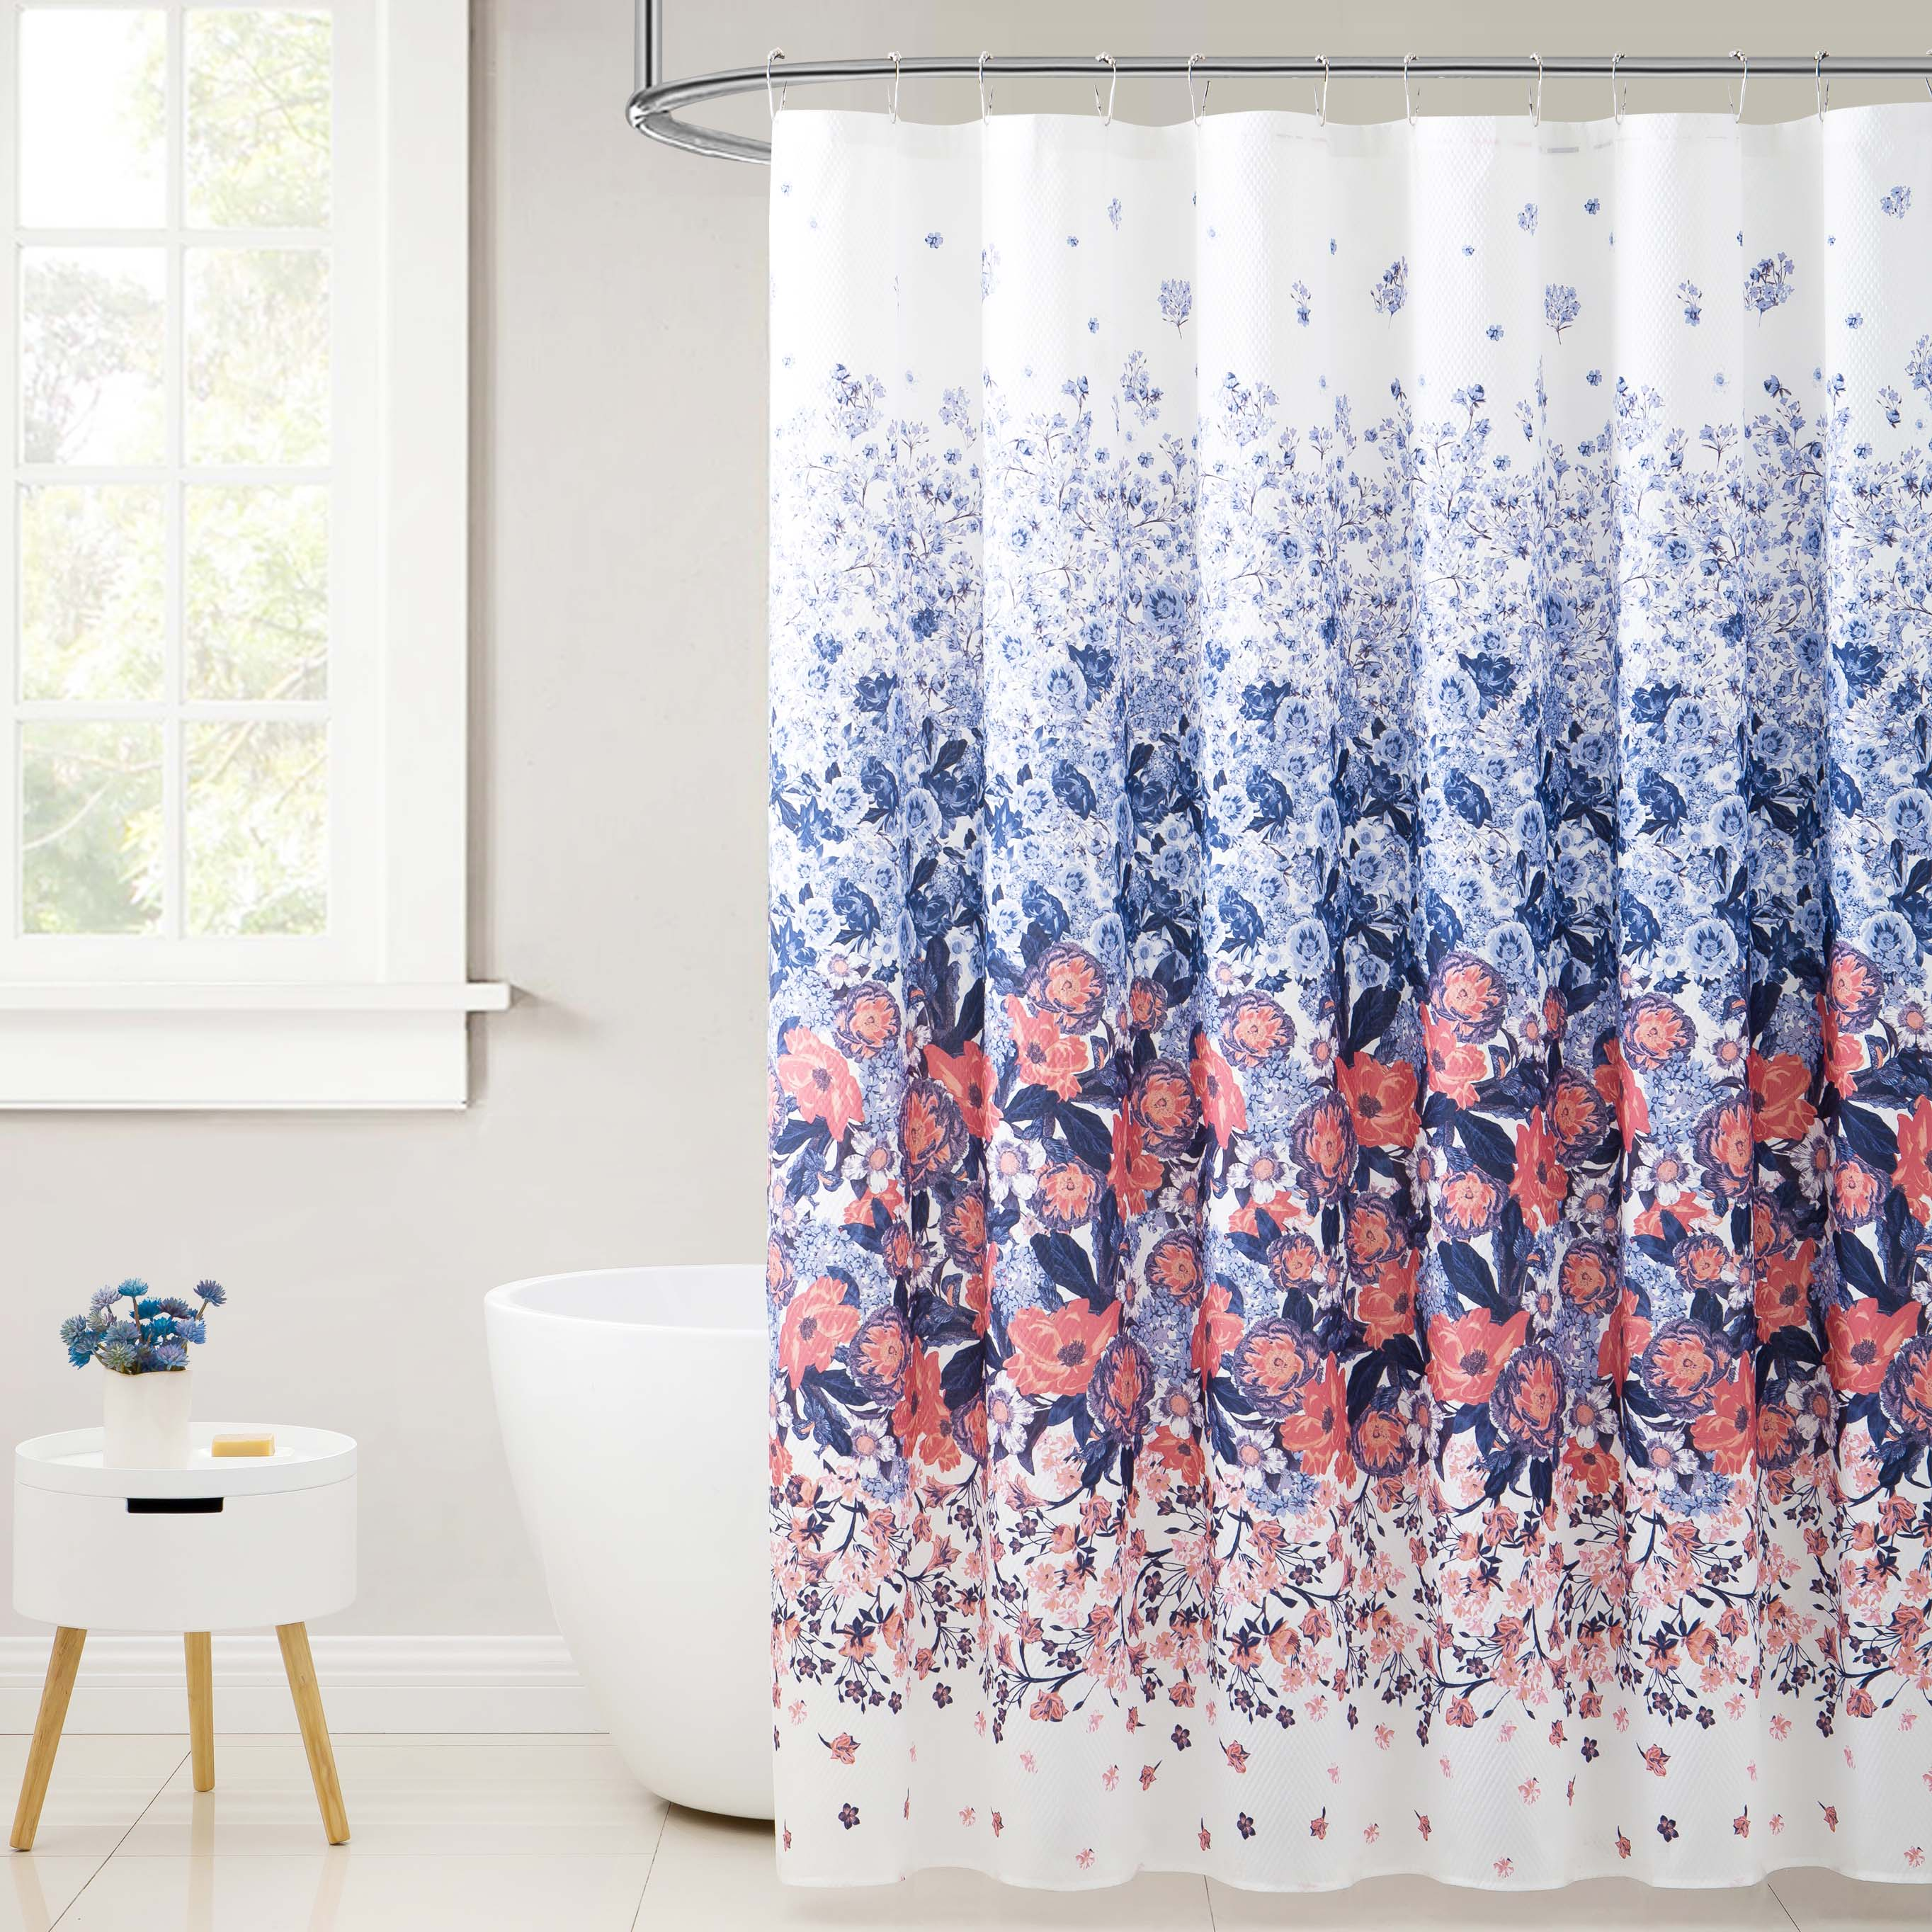 Fabric Shower Curtain White With Navy And Orange Coral